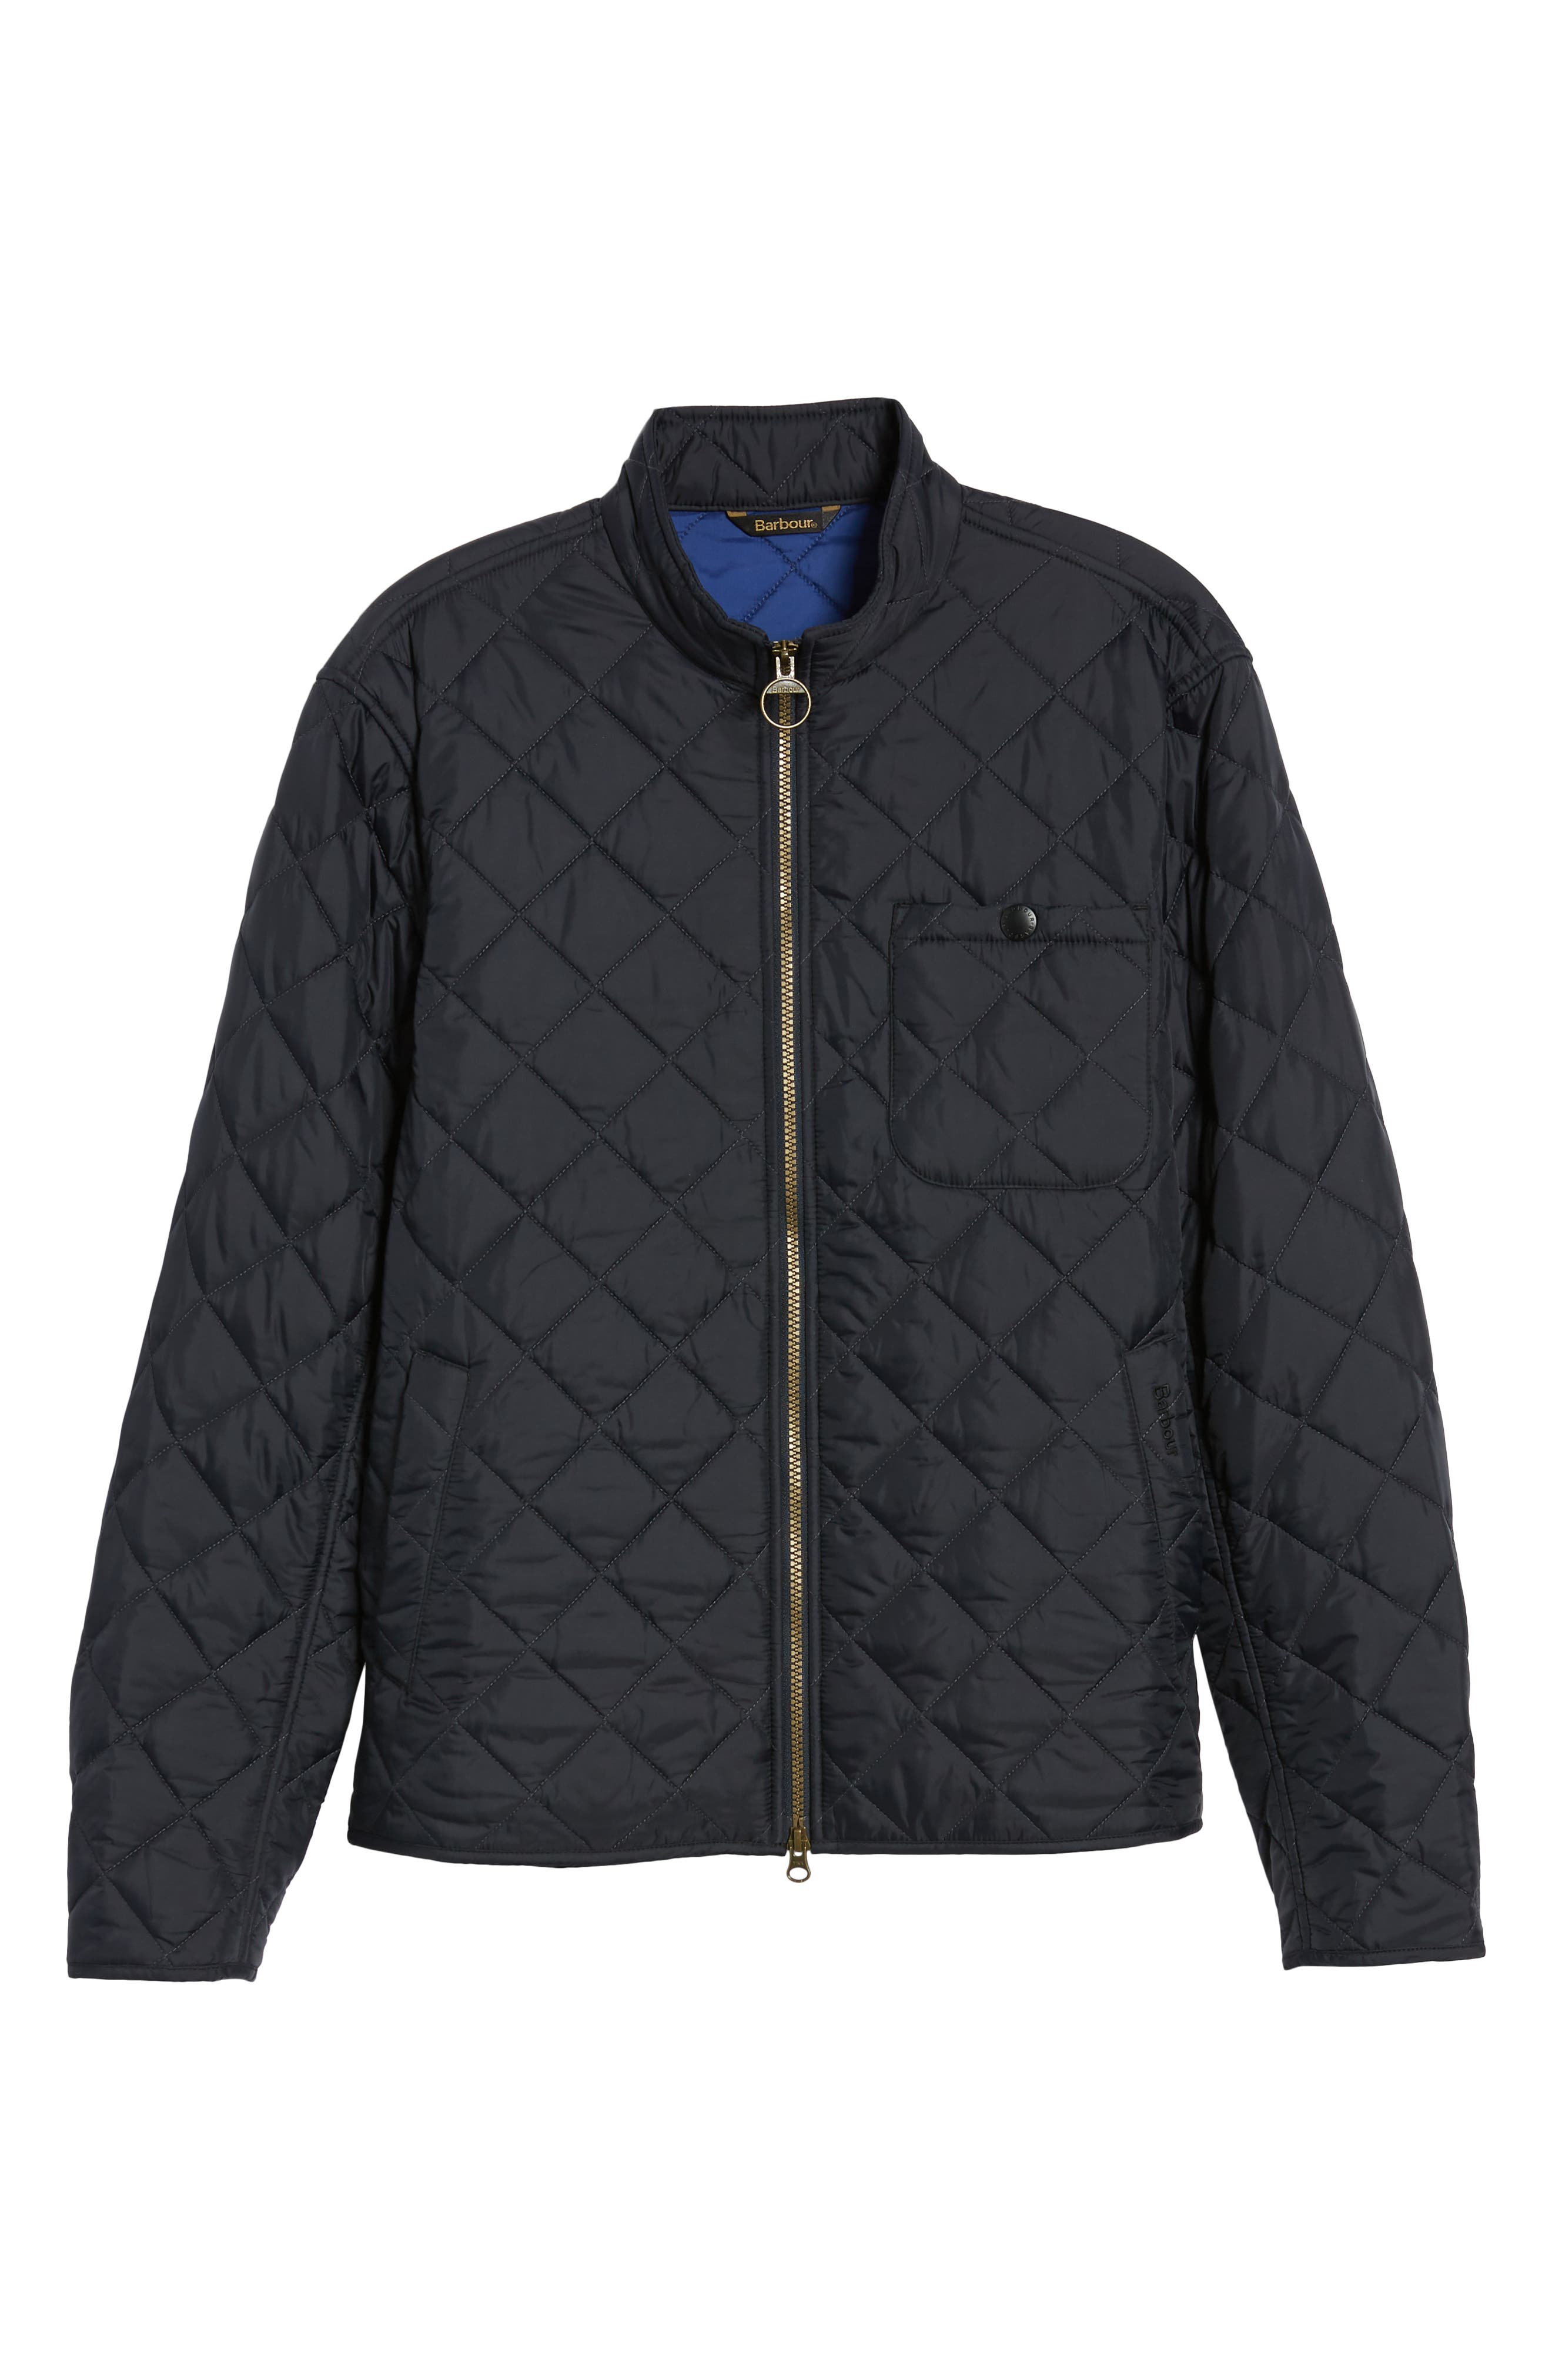 Pod Slim Fit Quilted Jacket,                             Alternate thumbnail 5, color,                             NAVY/ BLUE